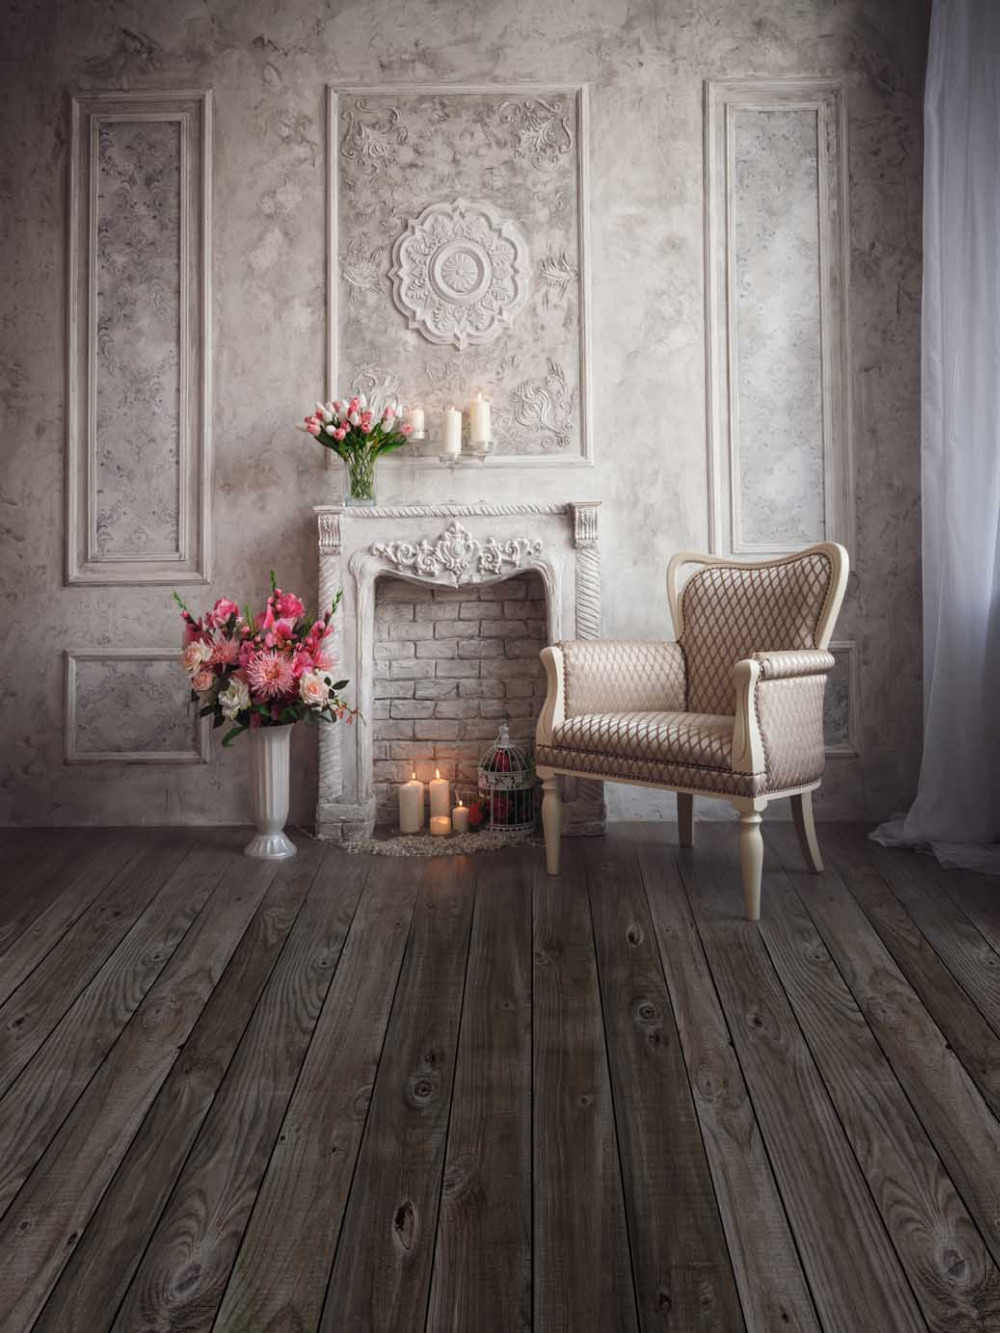 studio background backdrop fireplace custom chair wall candles vinyl pot flowers 360cm 240cm interior props marble days foto zoom aliexpress